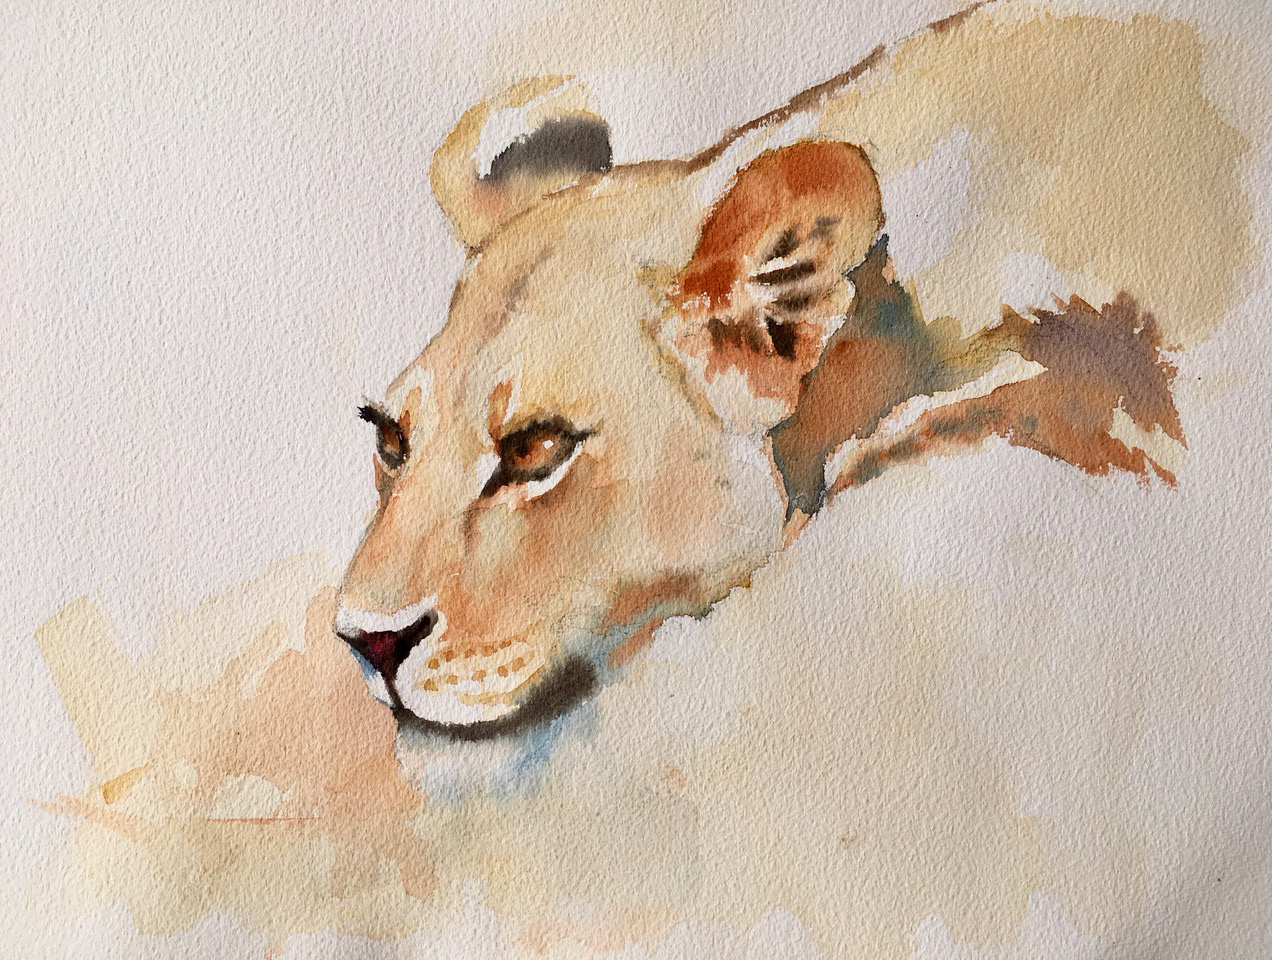 At the water's edge, Kalahari lioness. Watercolour 12 x 16 inches